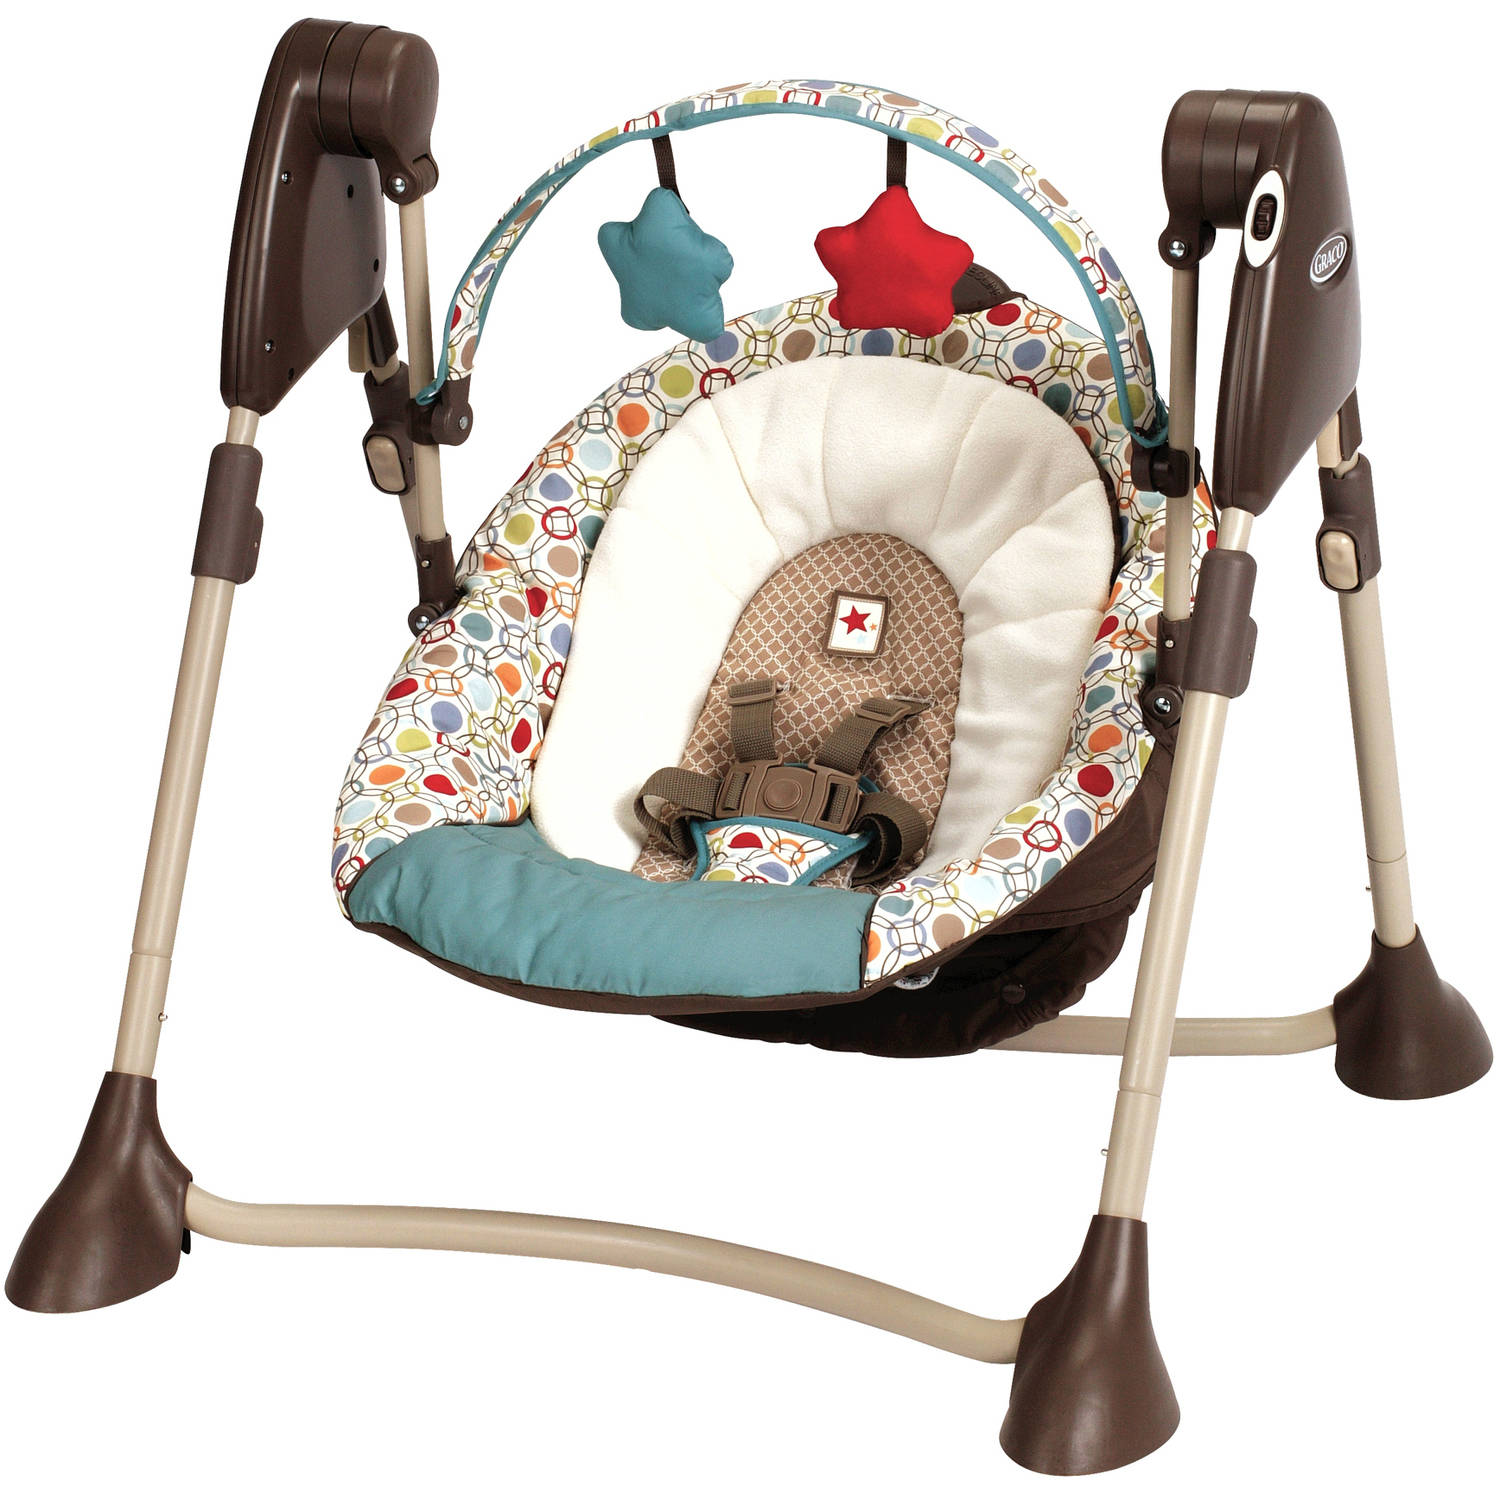 Graco Swing By Me Portable Baby Swing, Twister